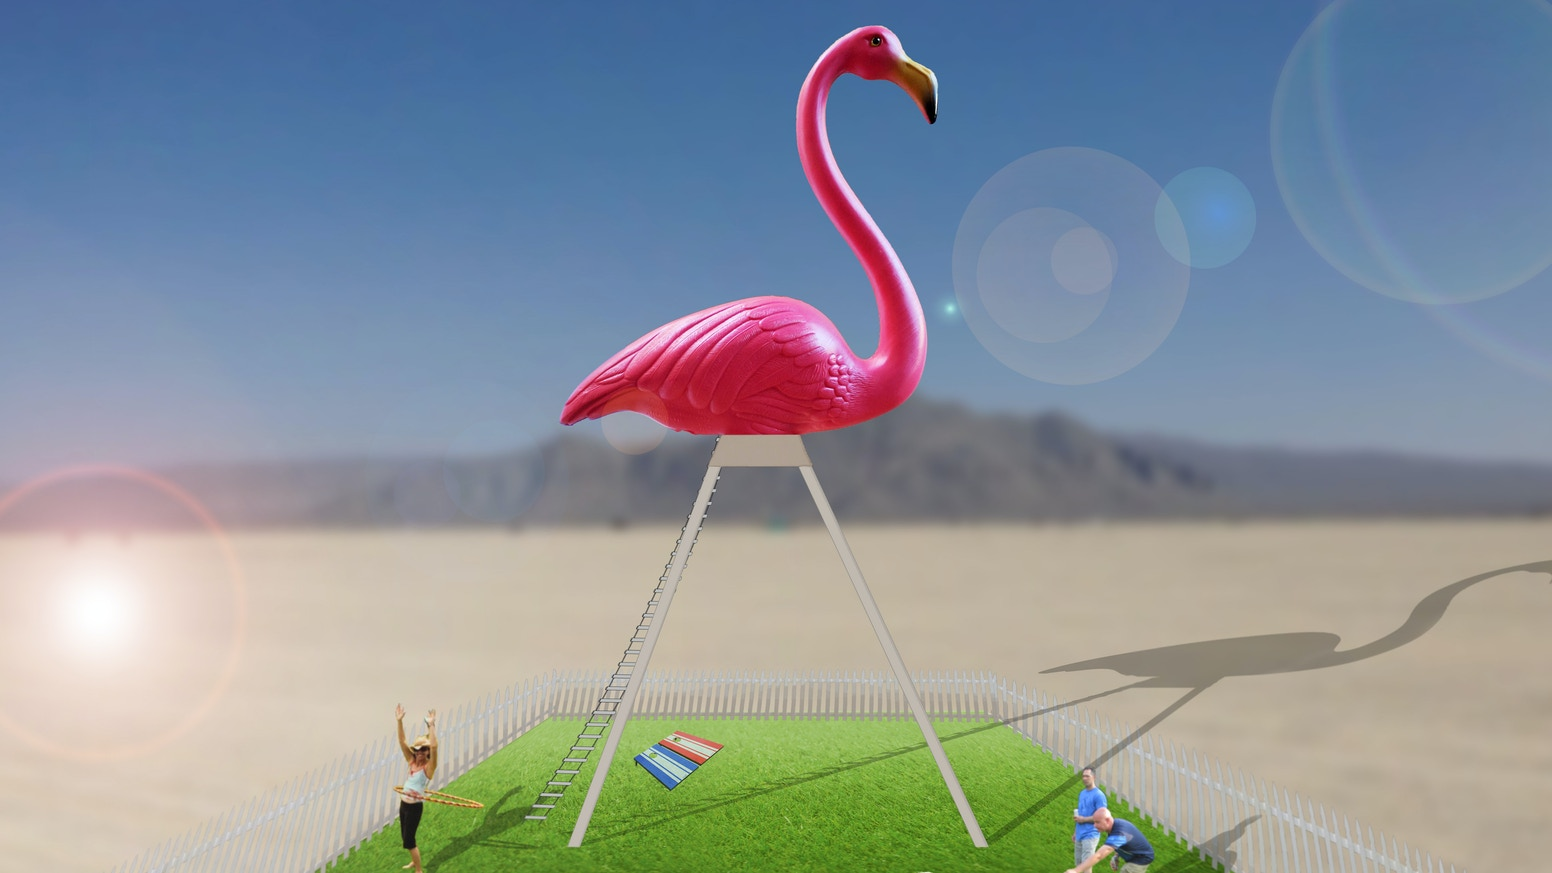 Help build the world's largest lawn flamingo, a 40-foot climbable sculpture, debuting at Burning Man 2017.